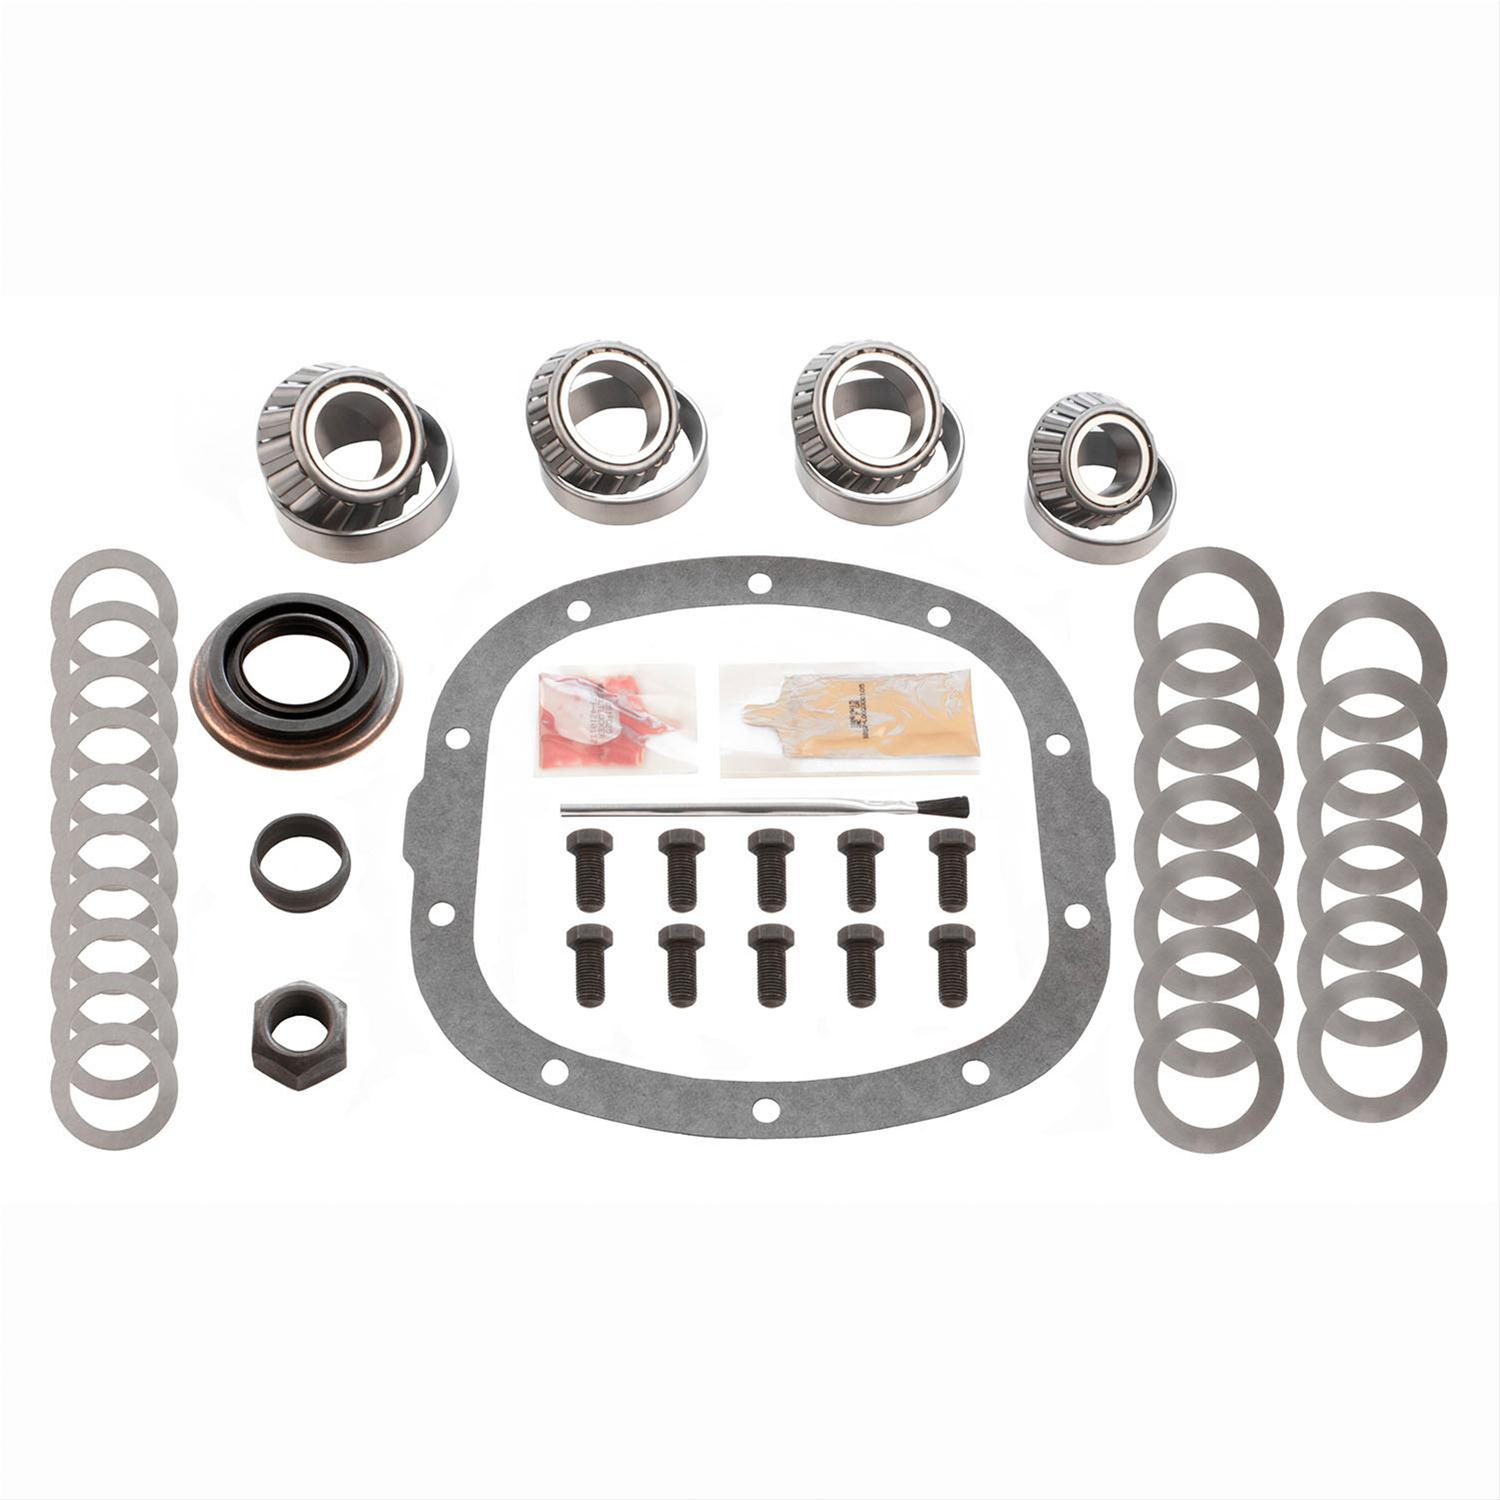 98-02 LS1 Fbody Motive Gear Ring and Pinion Installation Kit (Timken Bearings)